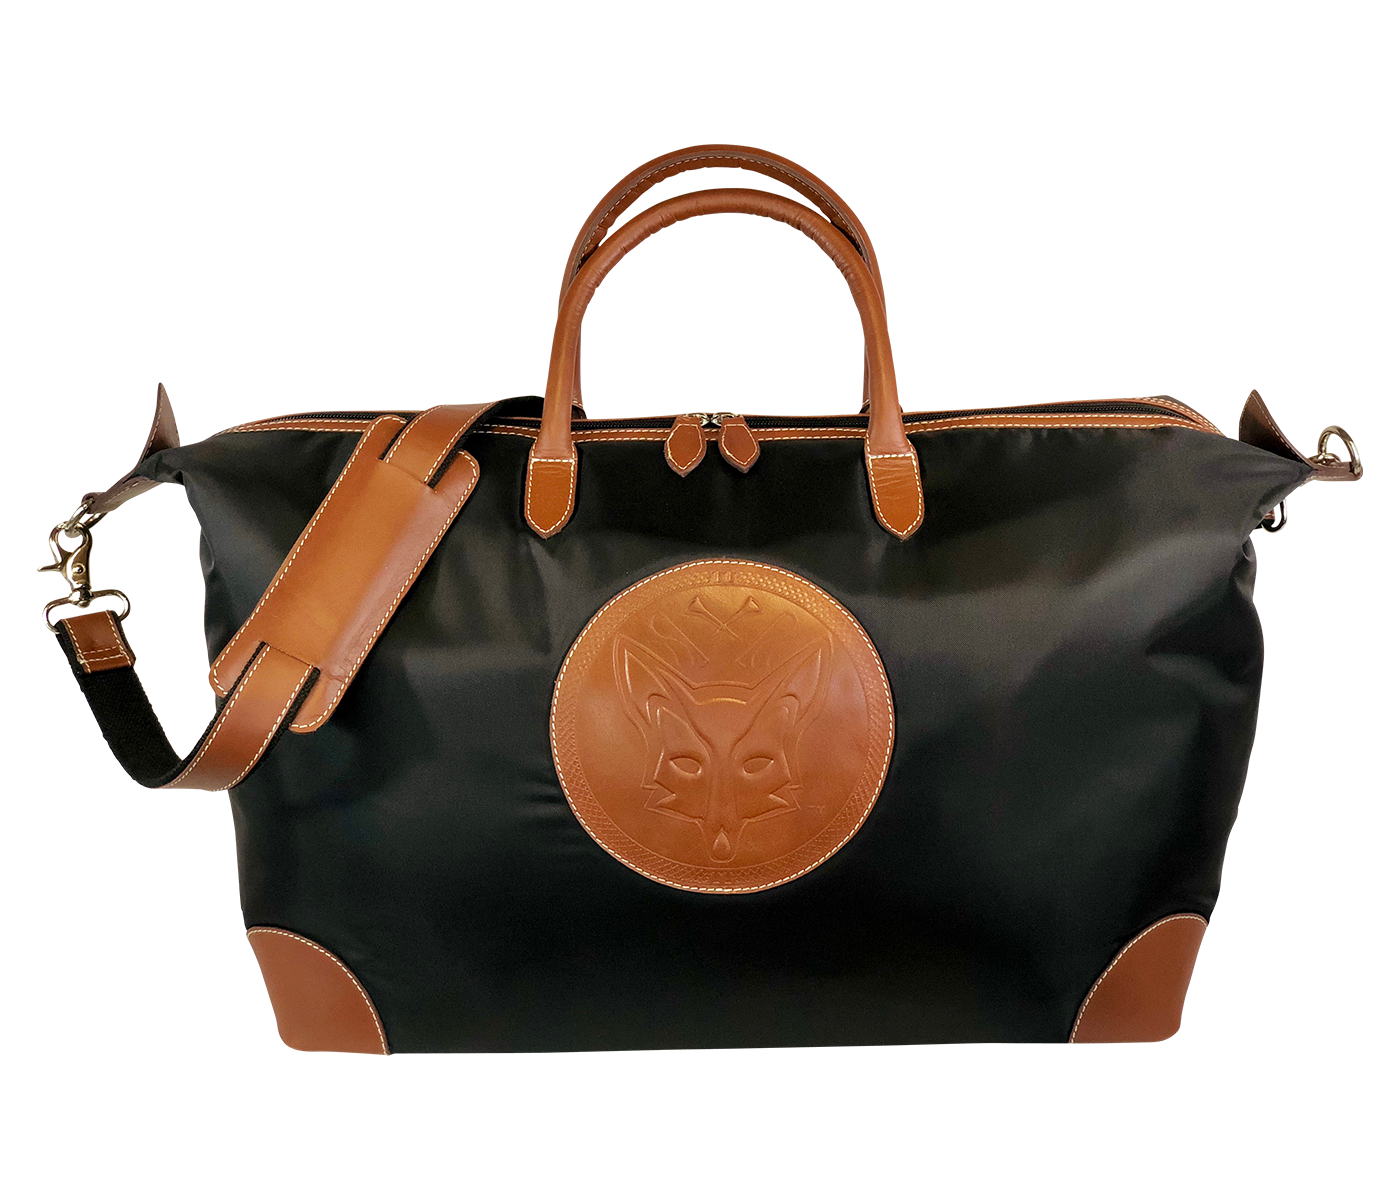 Tucker Tweed Leather Handbags Black/Chestnut / Fox The Tryon Travel Overnight: Foxhunting